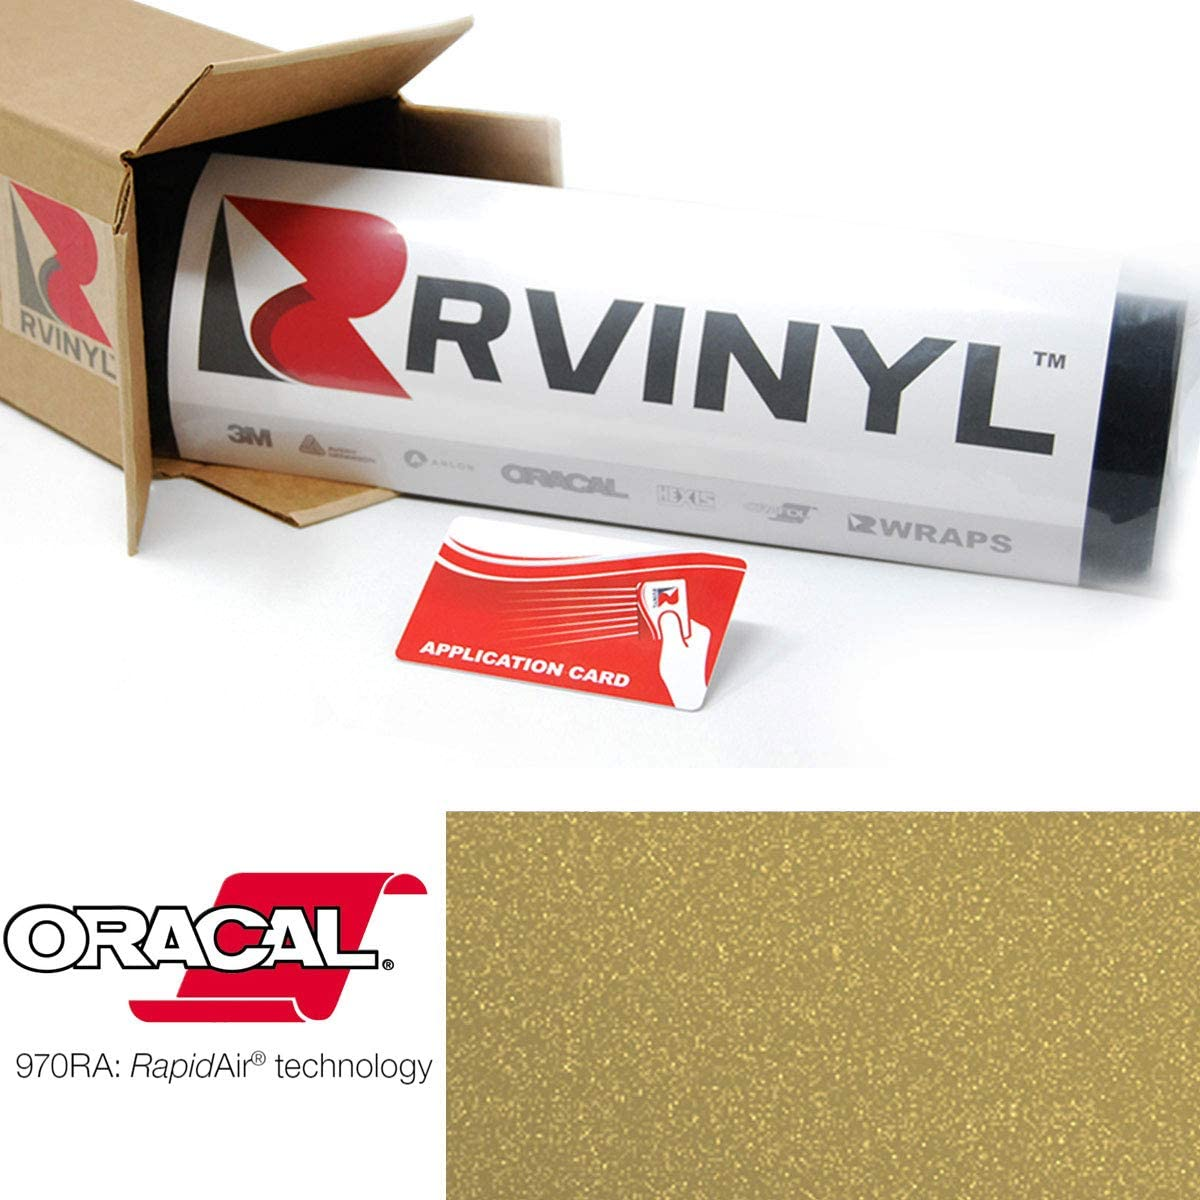 1ft x 5ft w//App Card ORACAL 970RA Matte Metallic Pyrite 926M Wrapping Cast Film Vehicle Car Wrap Vinyl Sheet Roll